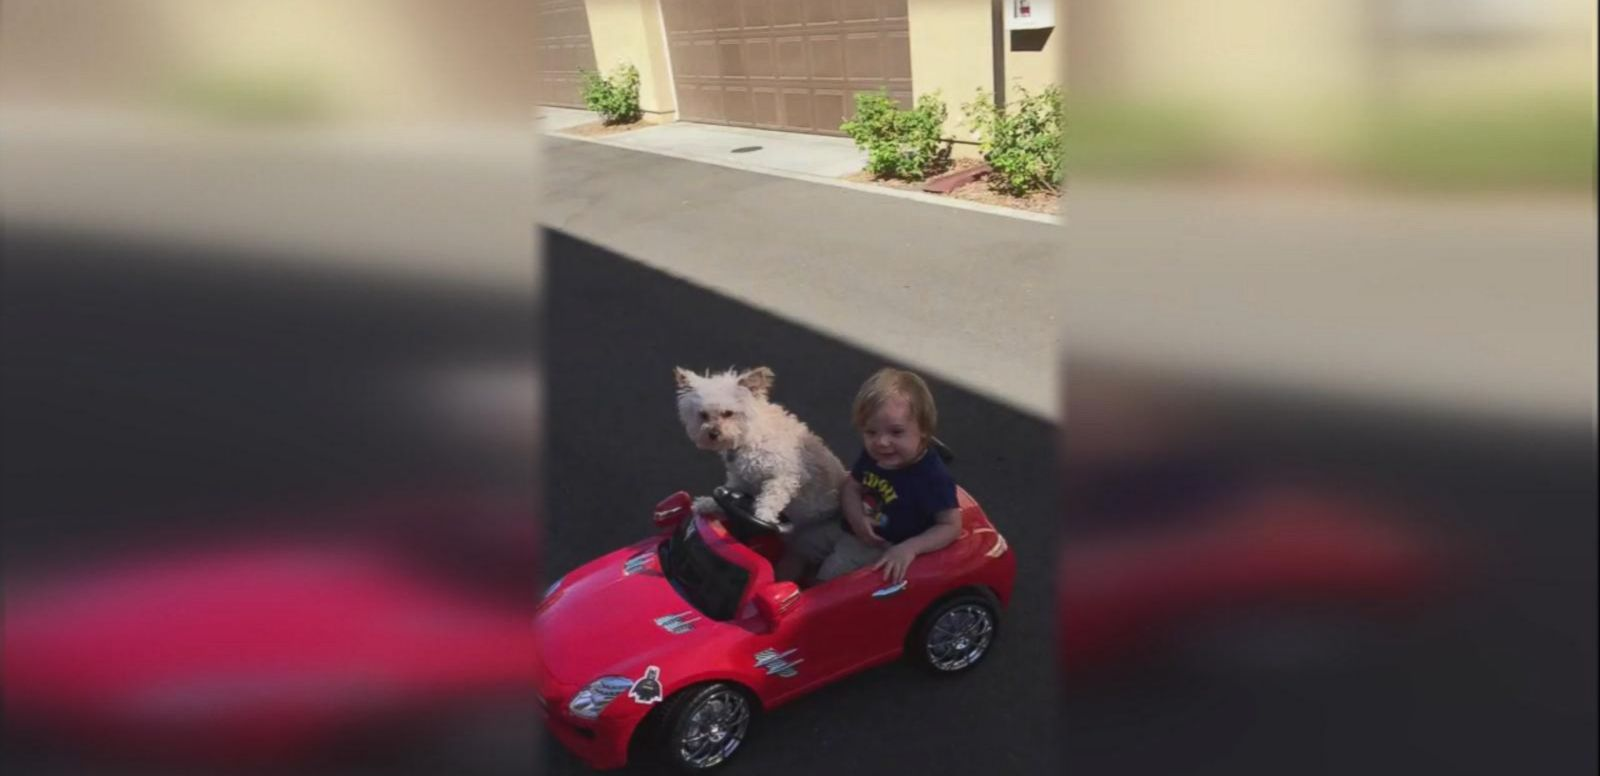 VIDEO: This Dog Puts The 'Fur' In Chauffeur